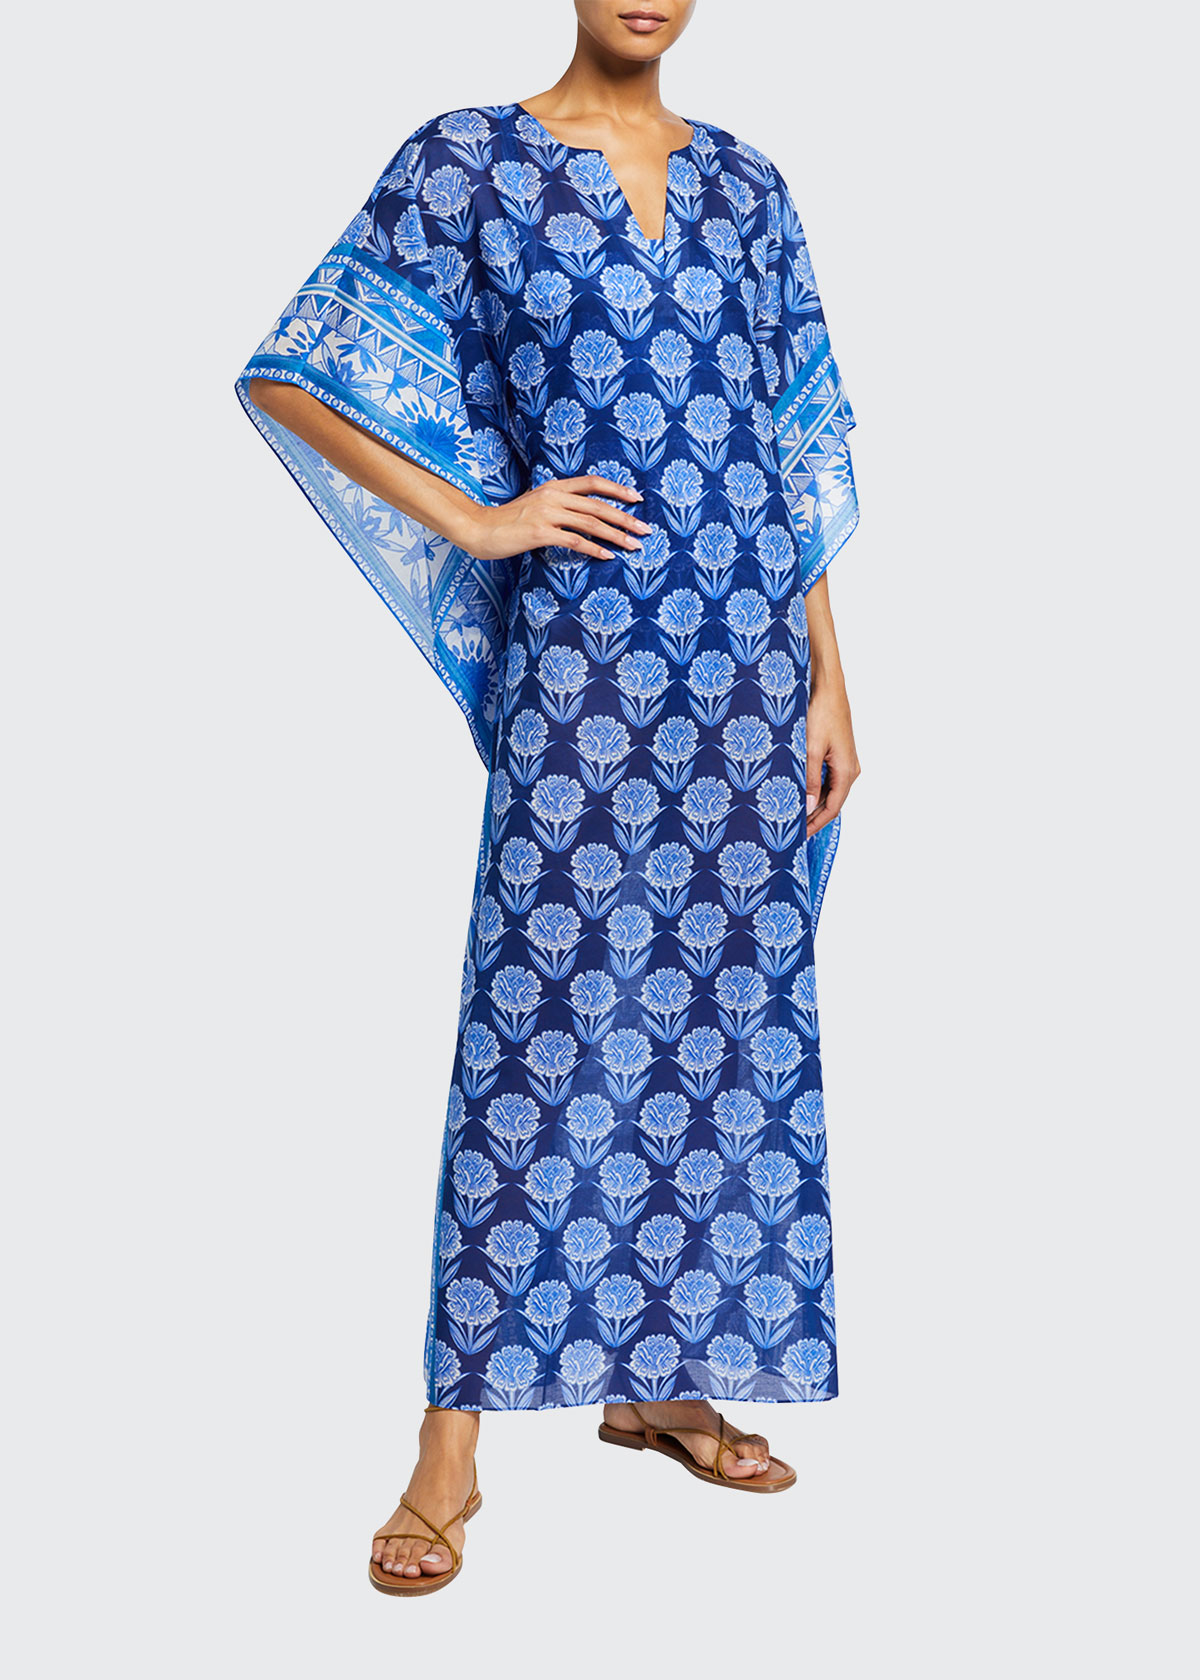 Johnny Was YAO FLORAL MAXI COVERUP KAFTAN